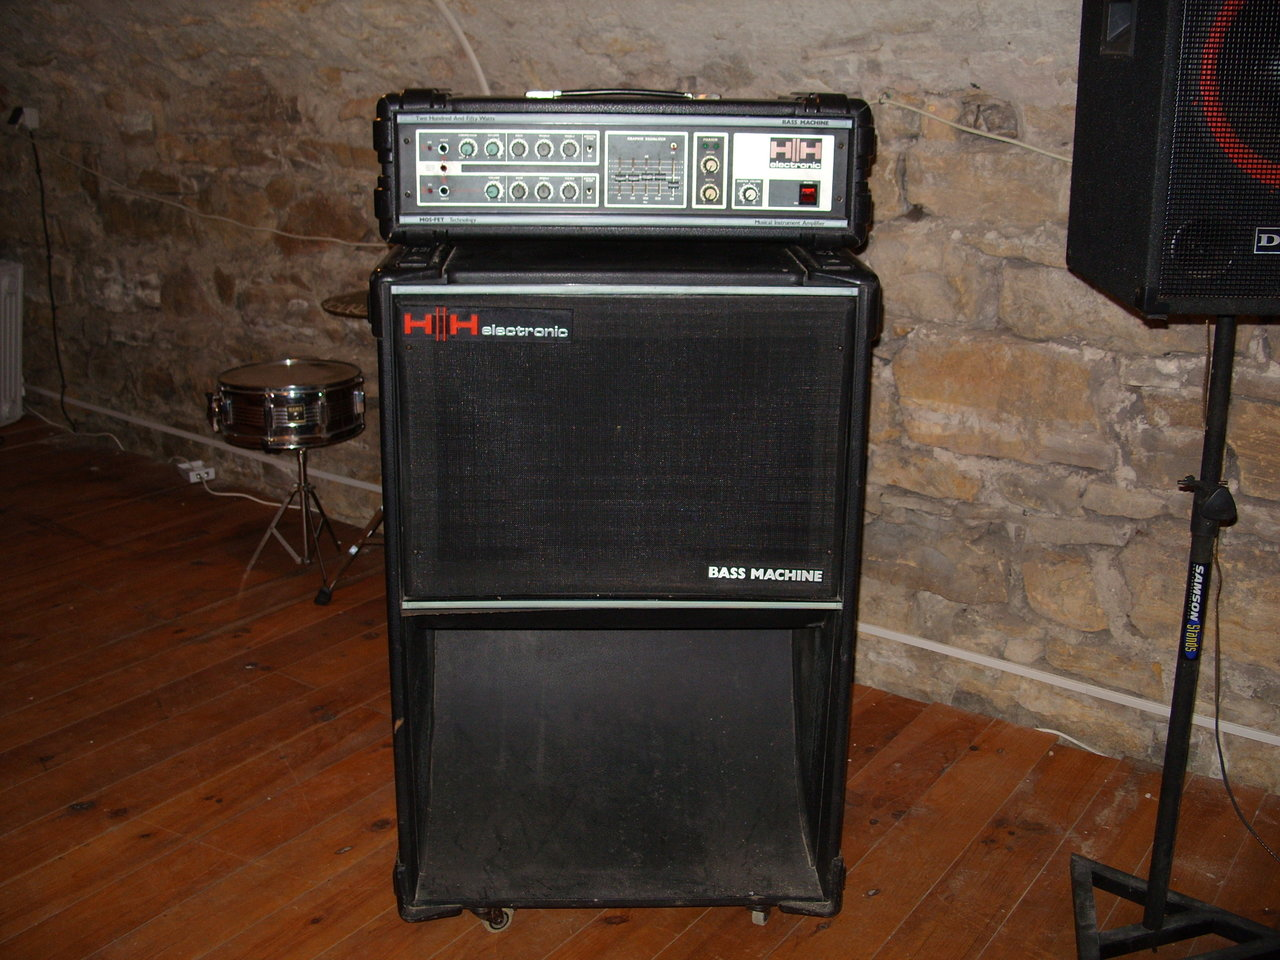 hh-bass-machine-839691.jpg